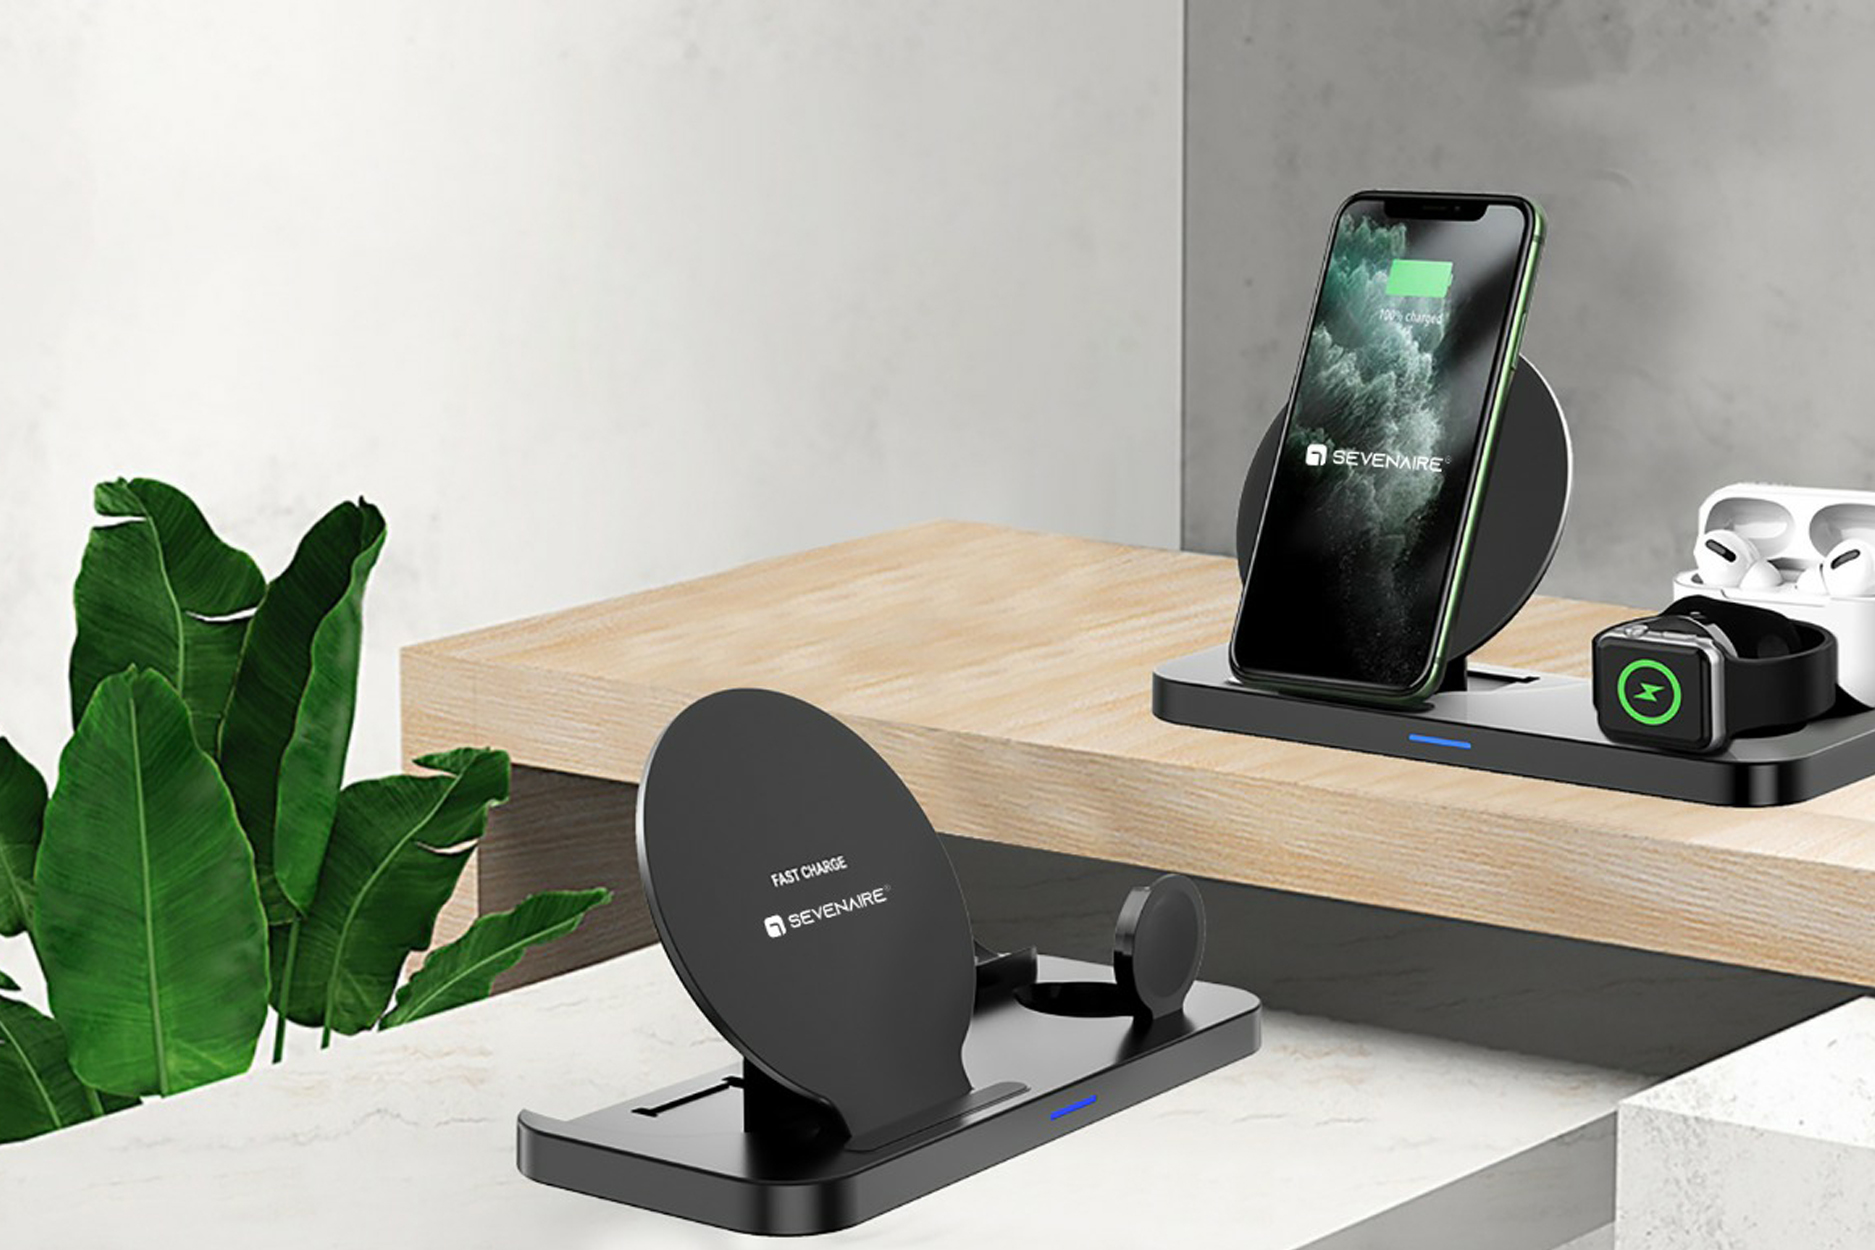 Sevenaire launches a foldable 3-in-1 wireless charging dock D1700 for iPhone, Apple Watch and AirPods